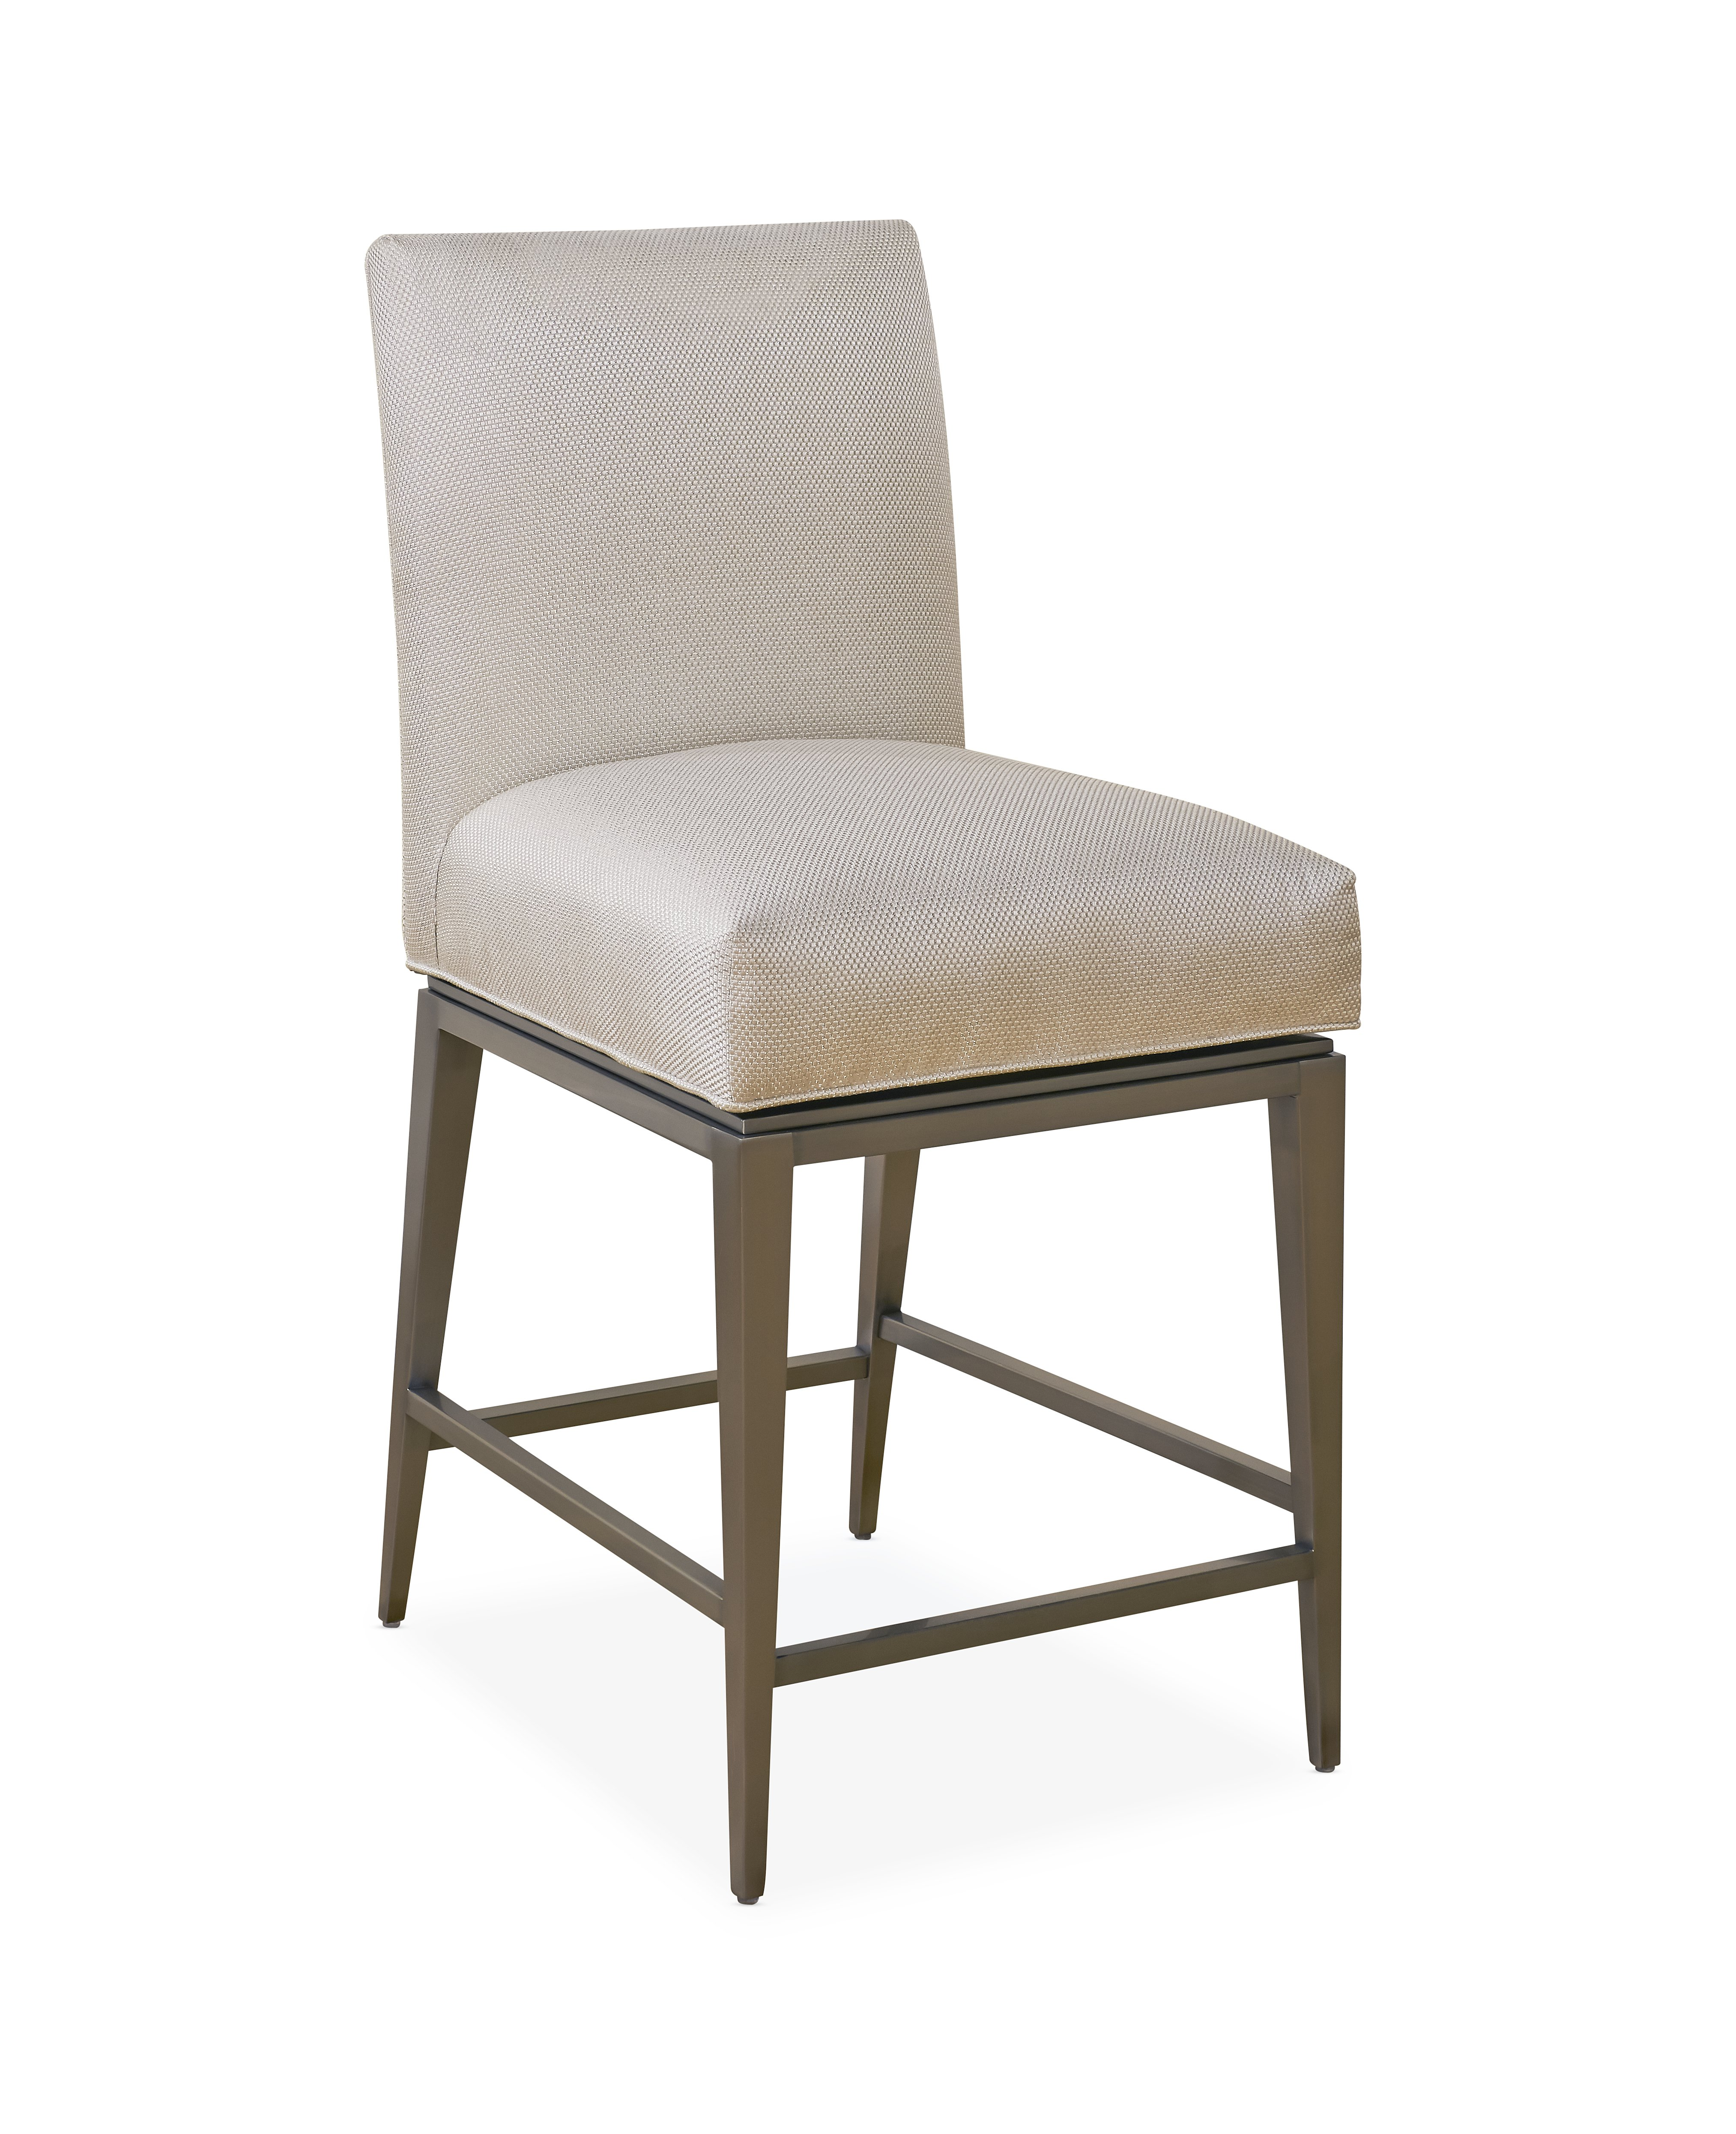 Wondrous Richfield Counter Height Dining Stool Antique Silver Gmtry Best Dining Table And Chair Ideas Images Gmtryco